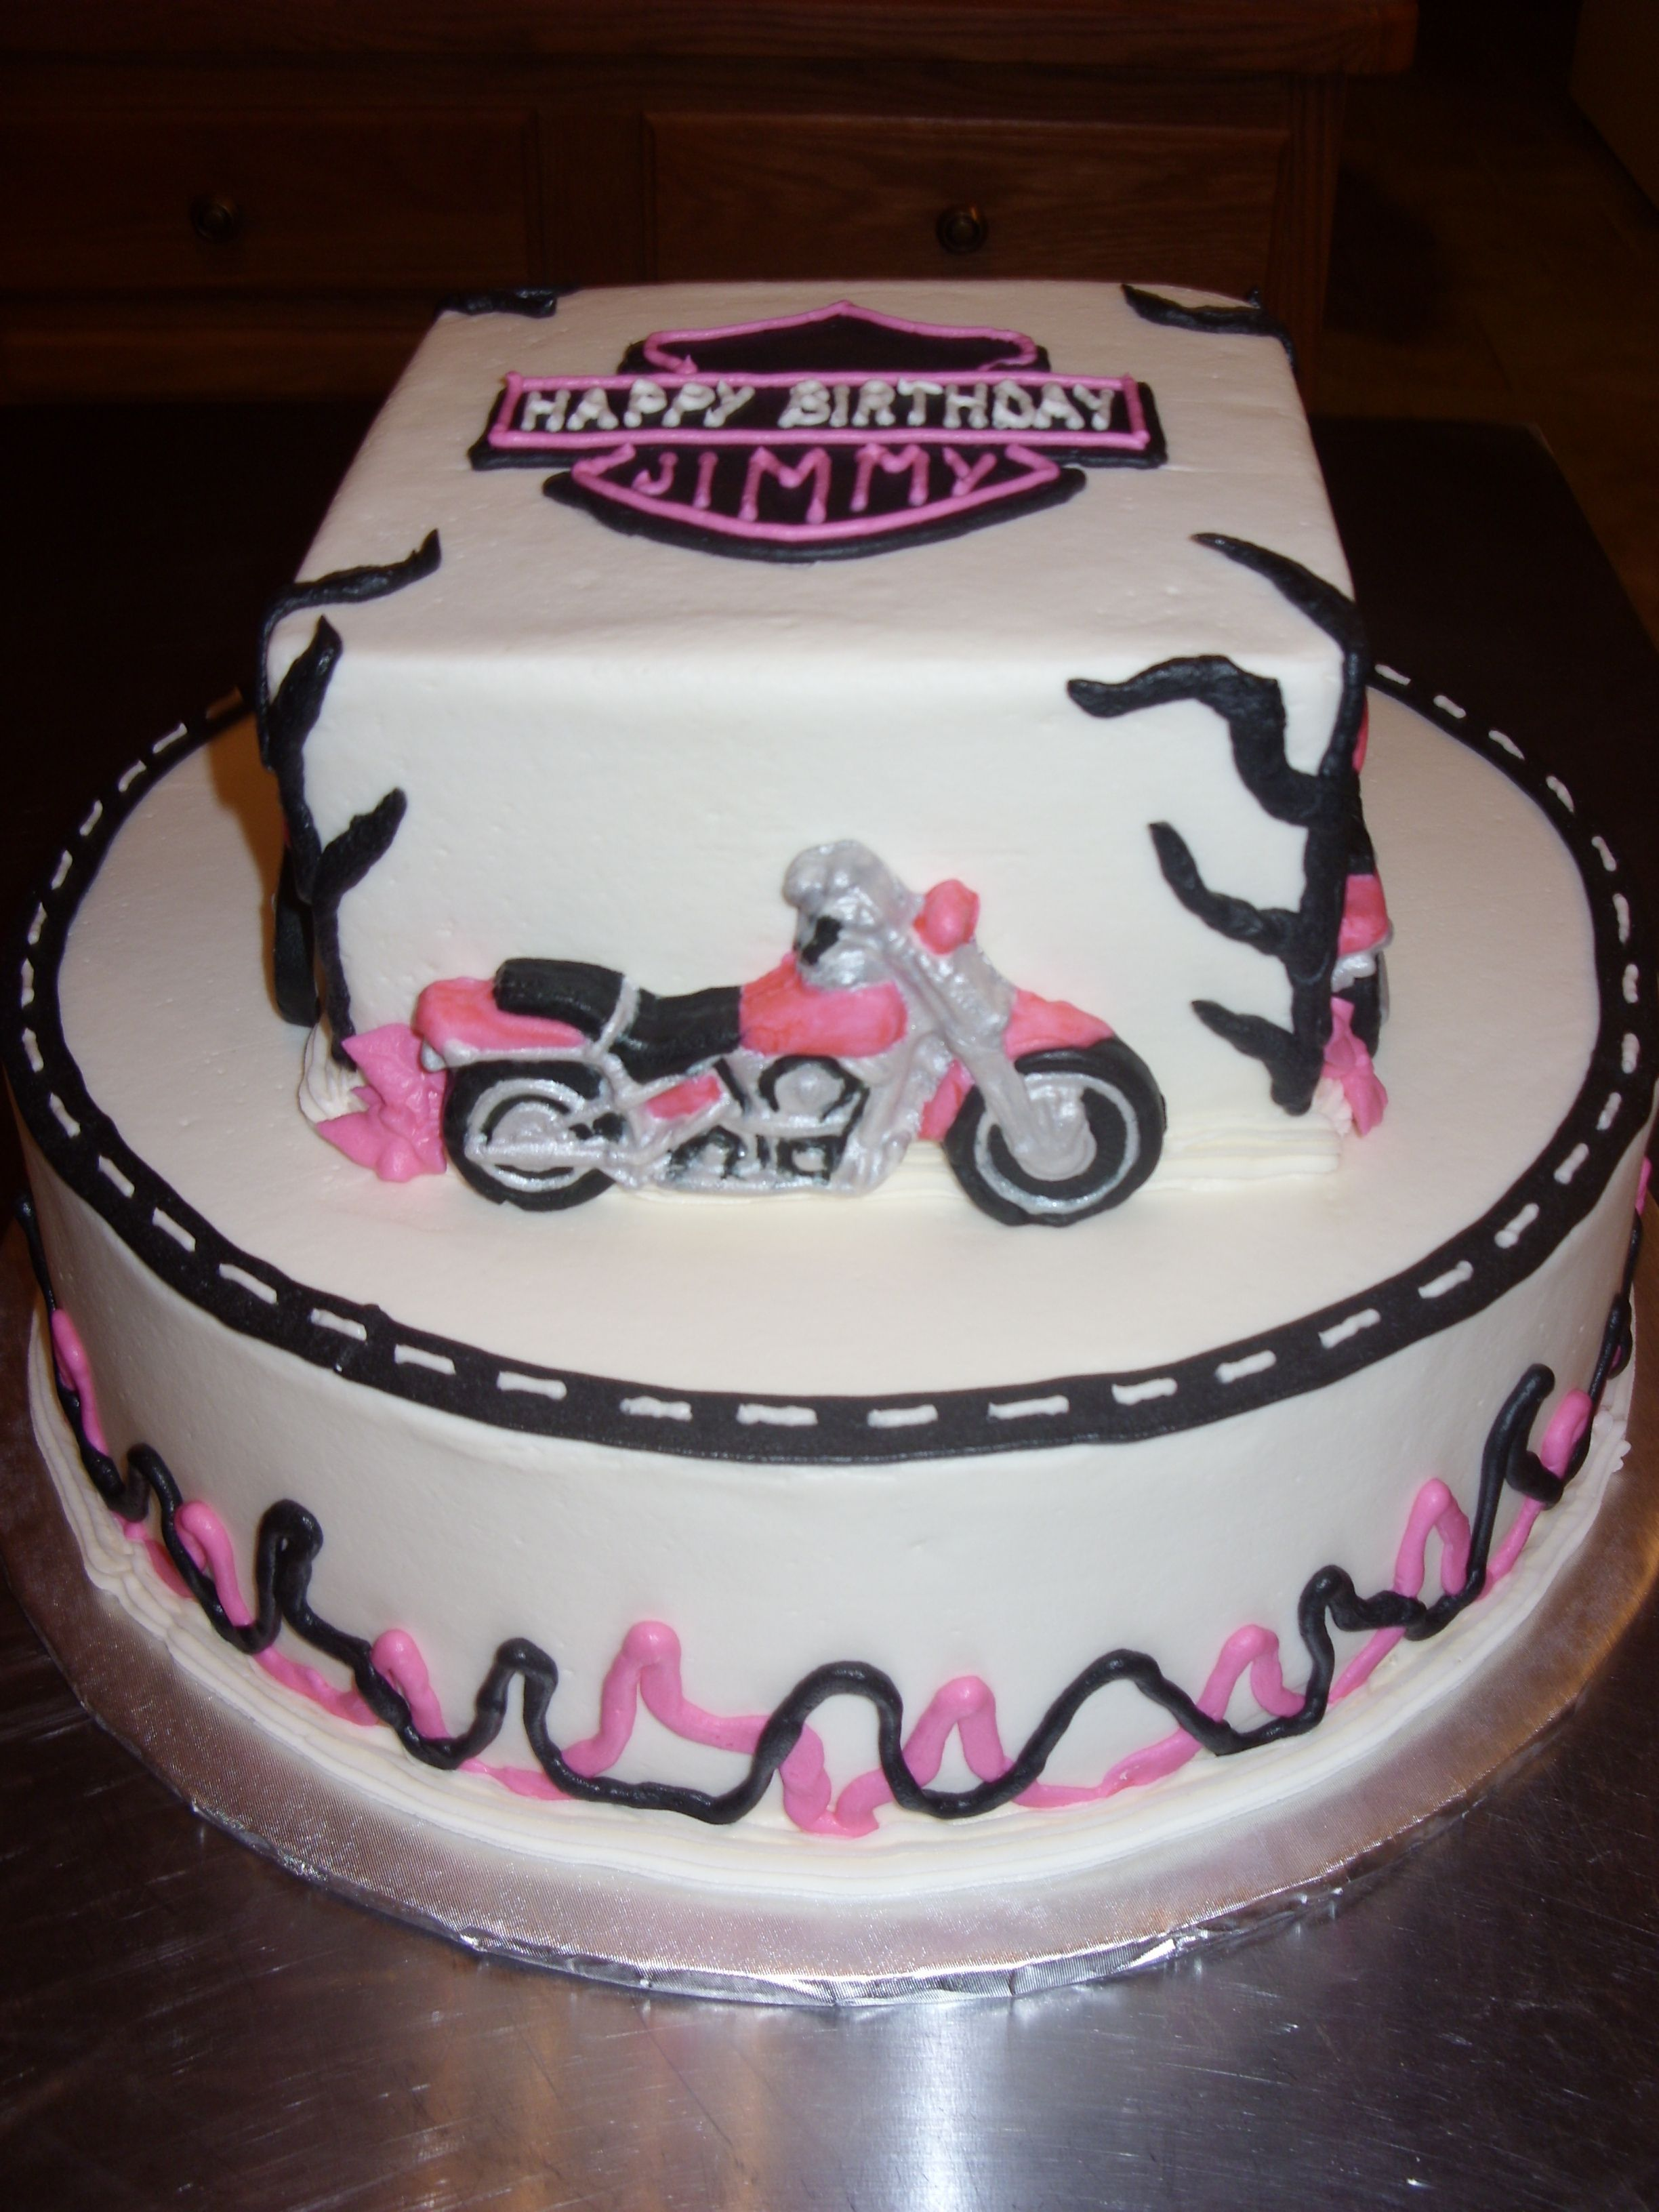 Pictures Of Motorcycle Cakes Celebration Cakes With Images